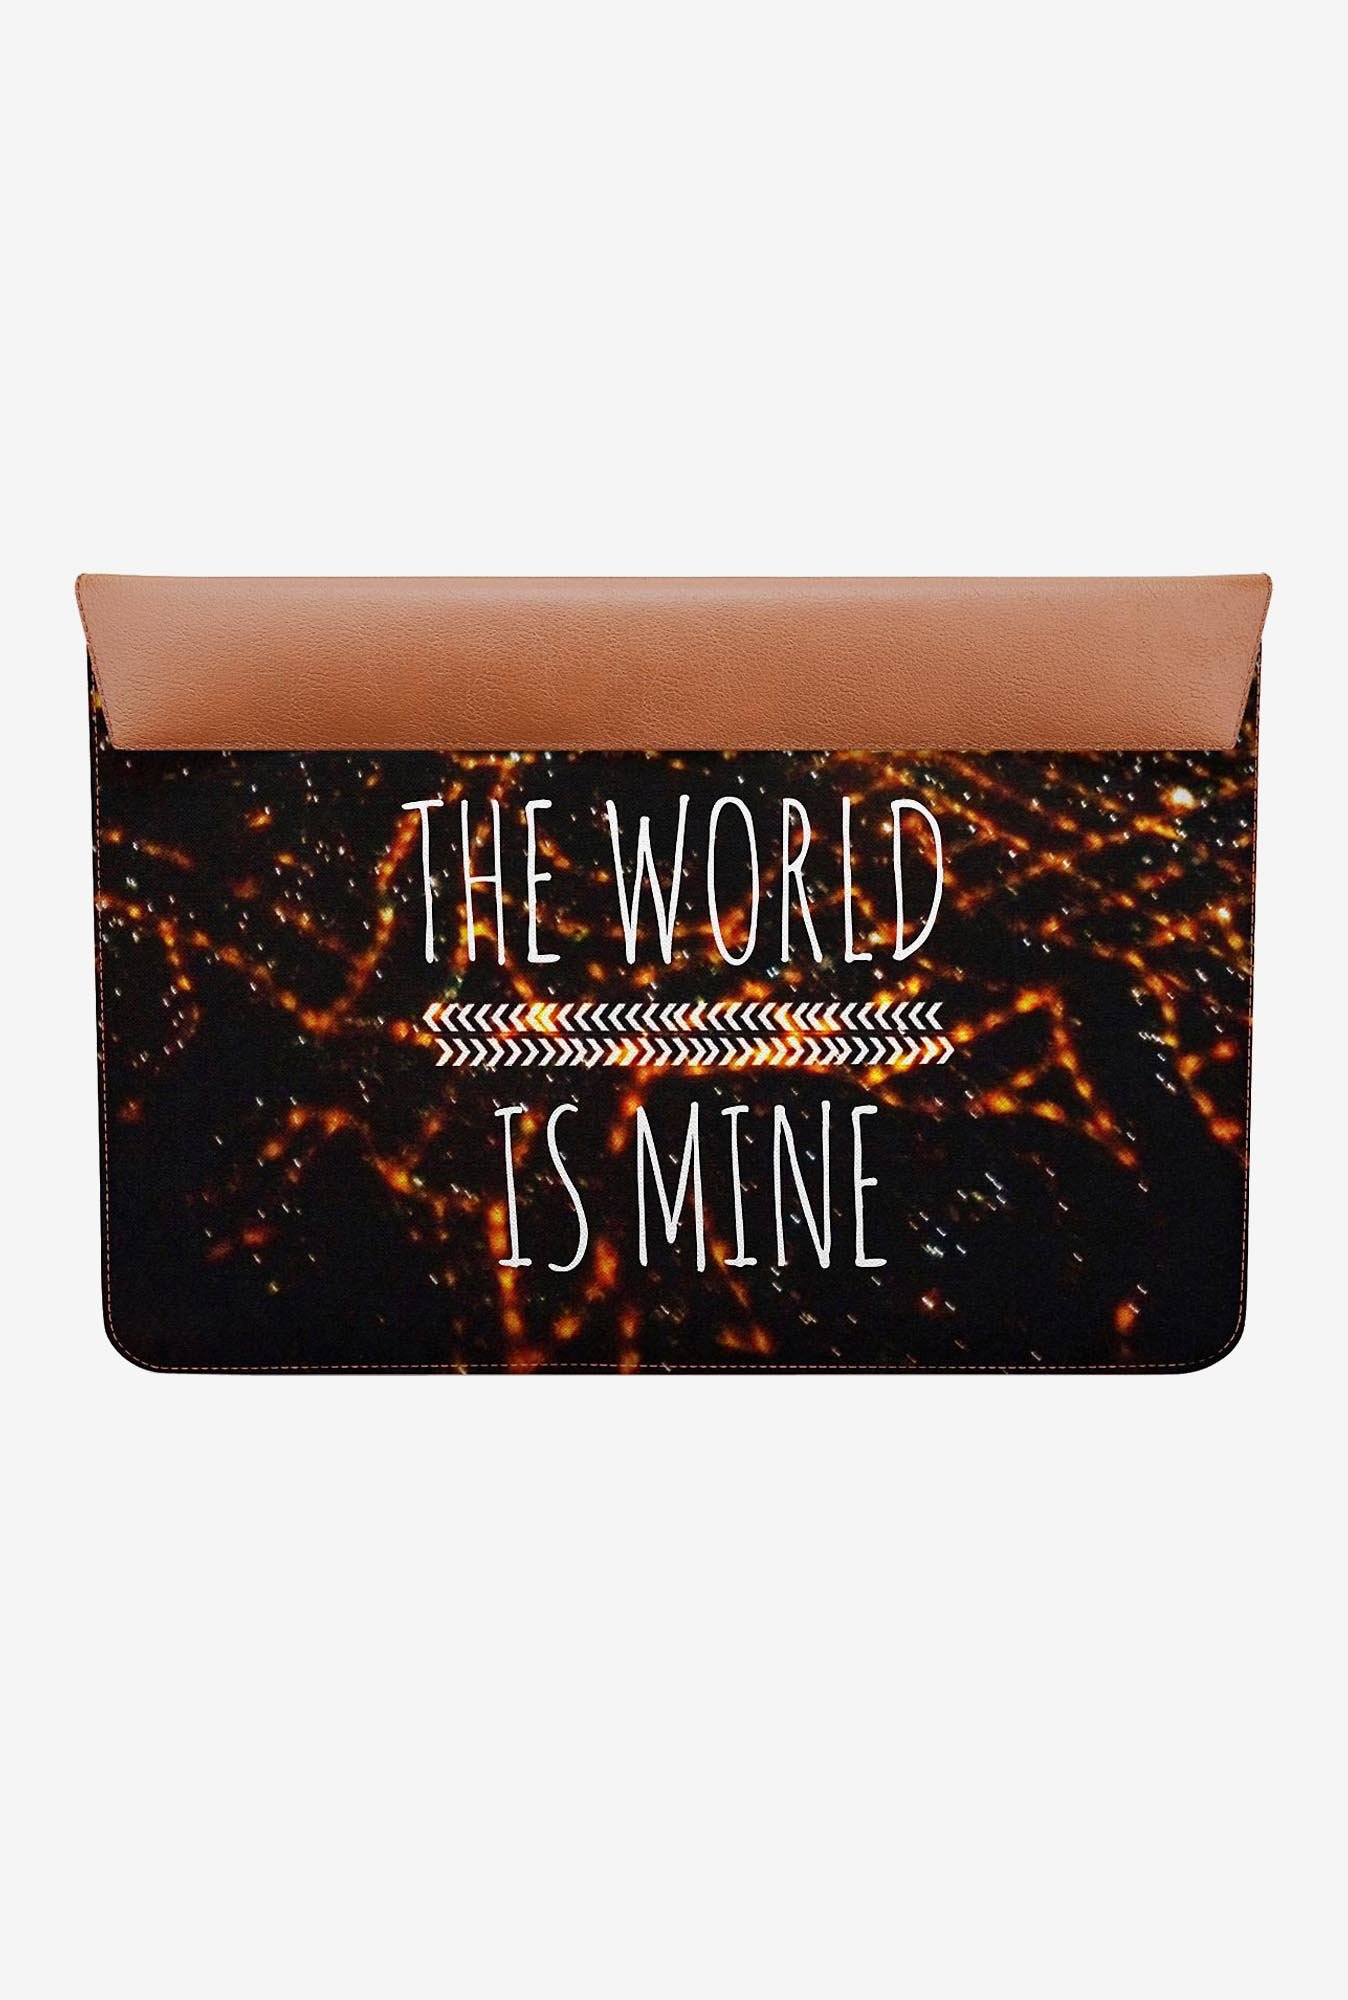 DailyObjects World is mine MacBook Pro 15 Envelope Sleeve